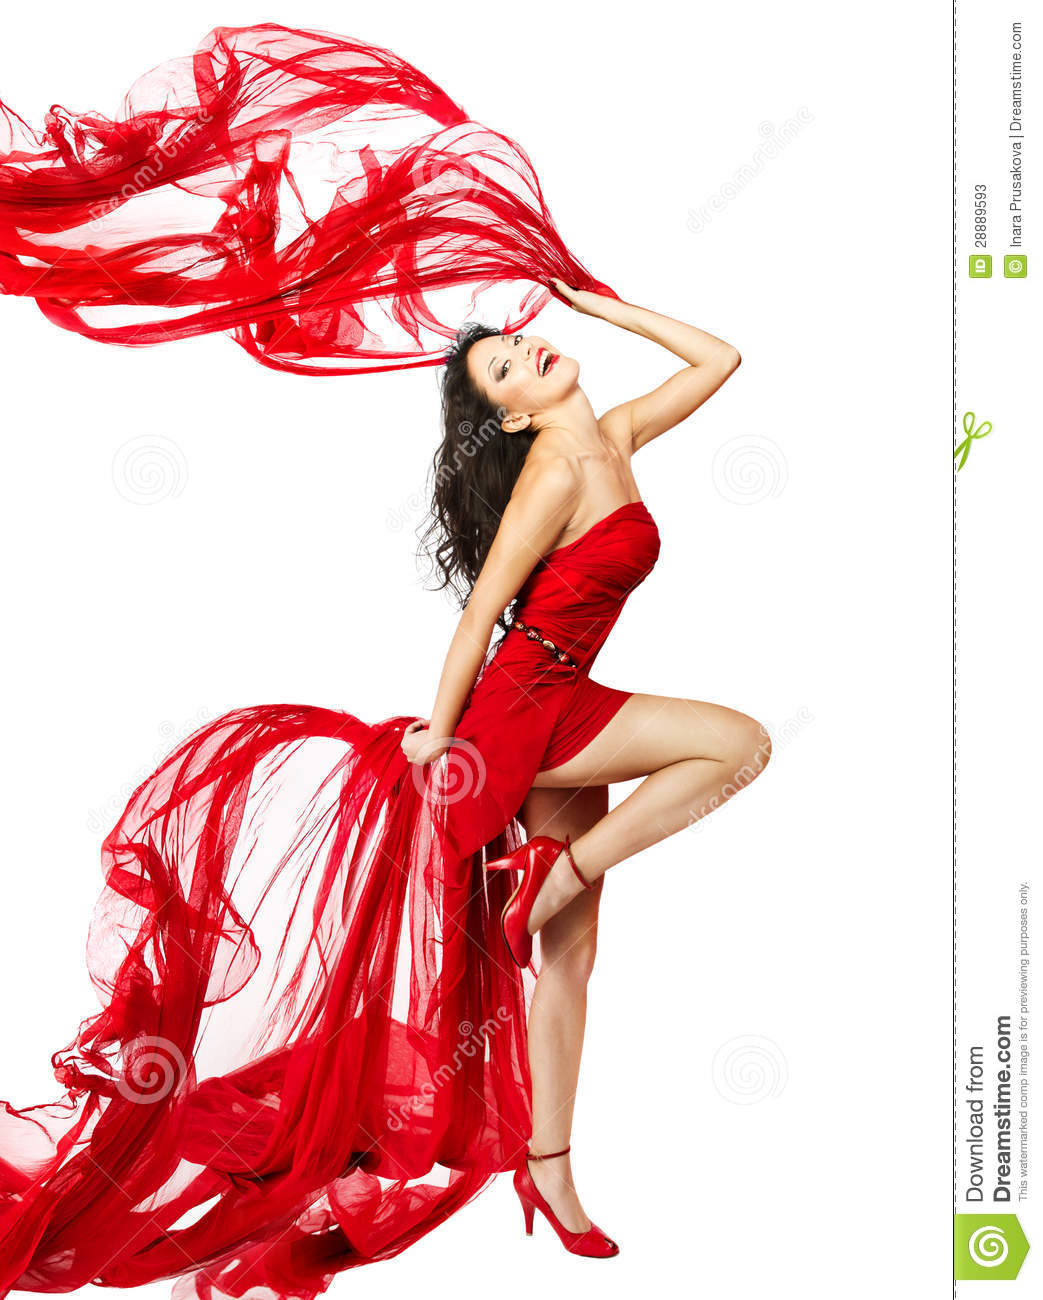 6d7f6a94f994 Woman in red dress dancing stock image. Image of corset - 28889593